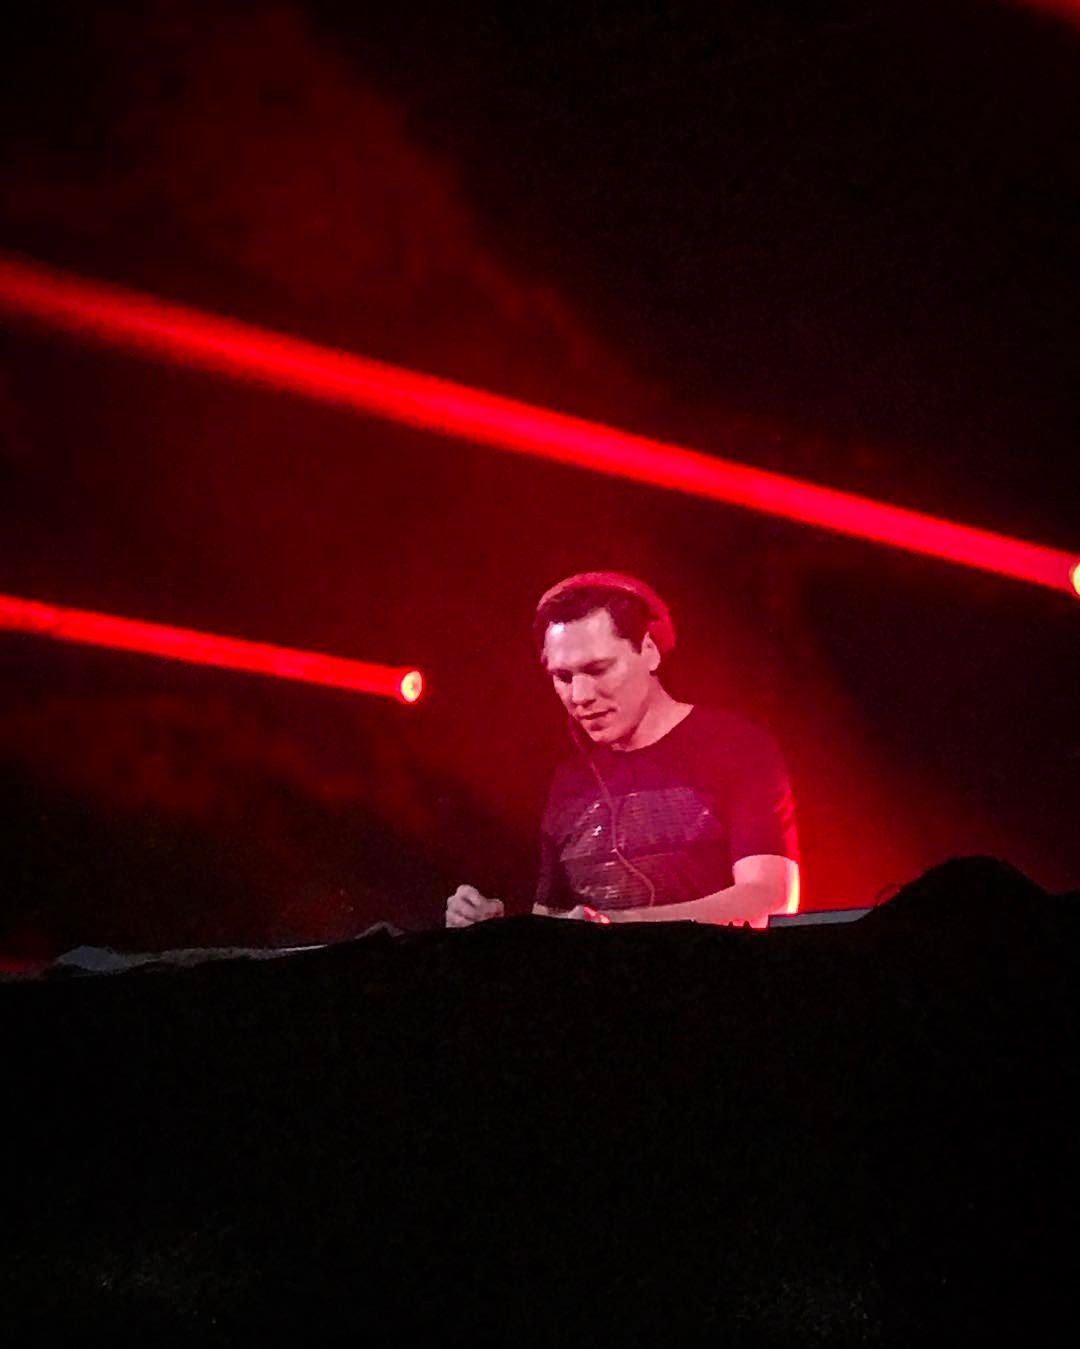 Tiësto photos | The Brooklyn Hangar | Brooklyn, NY - february 24 & 25, 2017